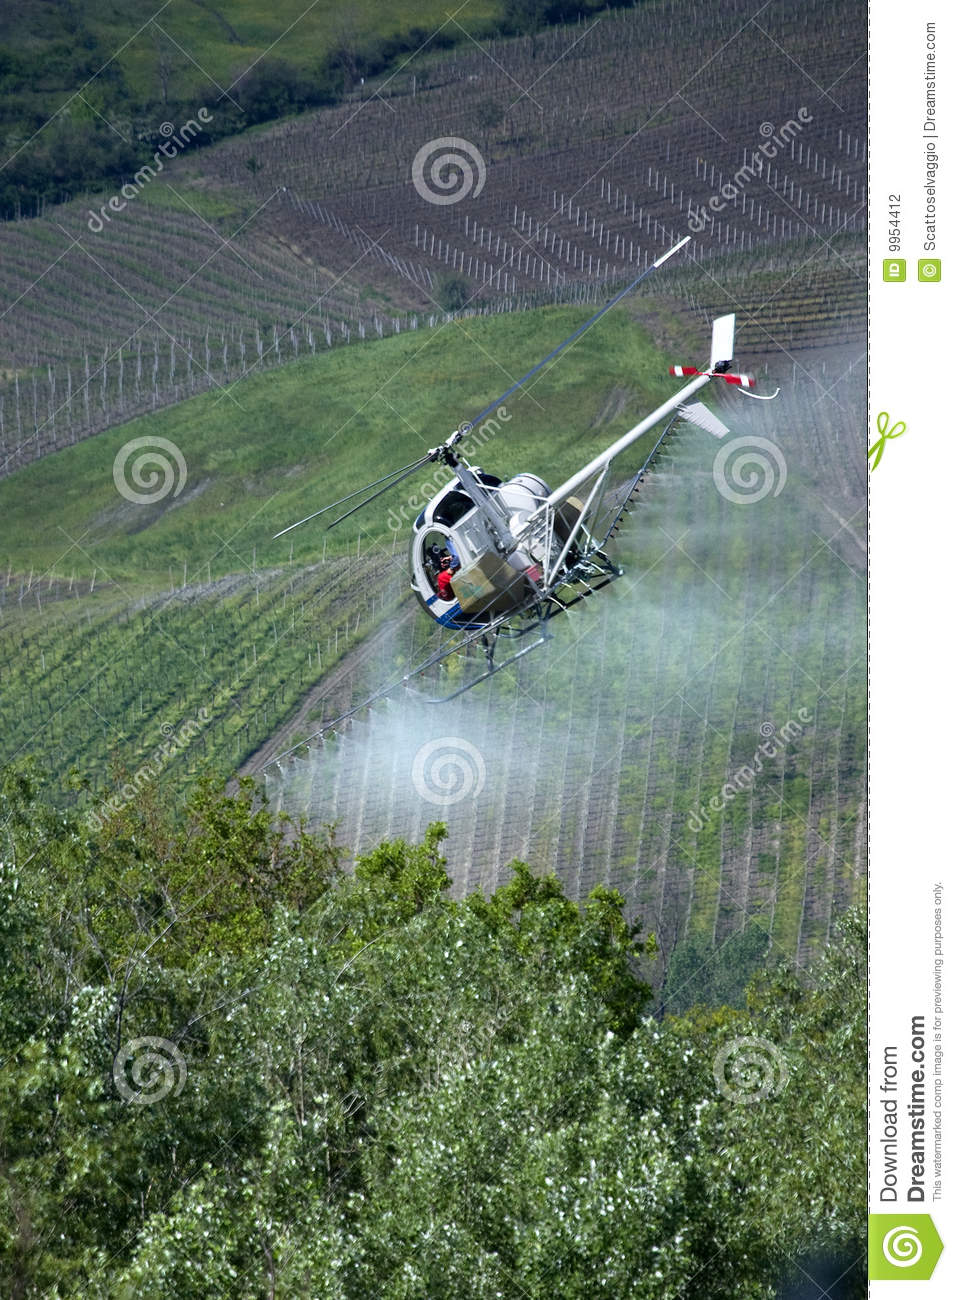 Following the spraying helicopter. Helicopter spraying pesticides. Chemical treatments by helicopter over the vineyards. Italy, Oltrepo pavese hills.